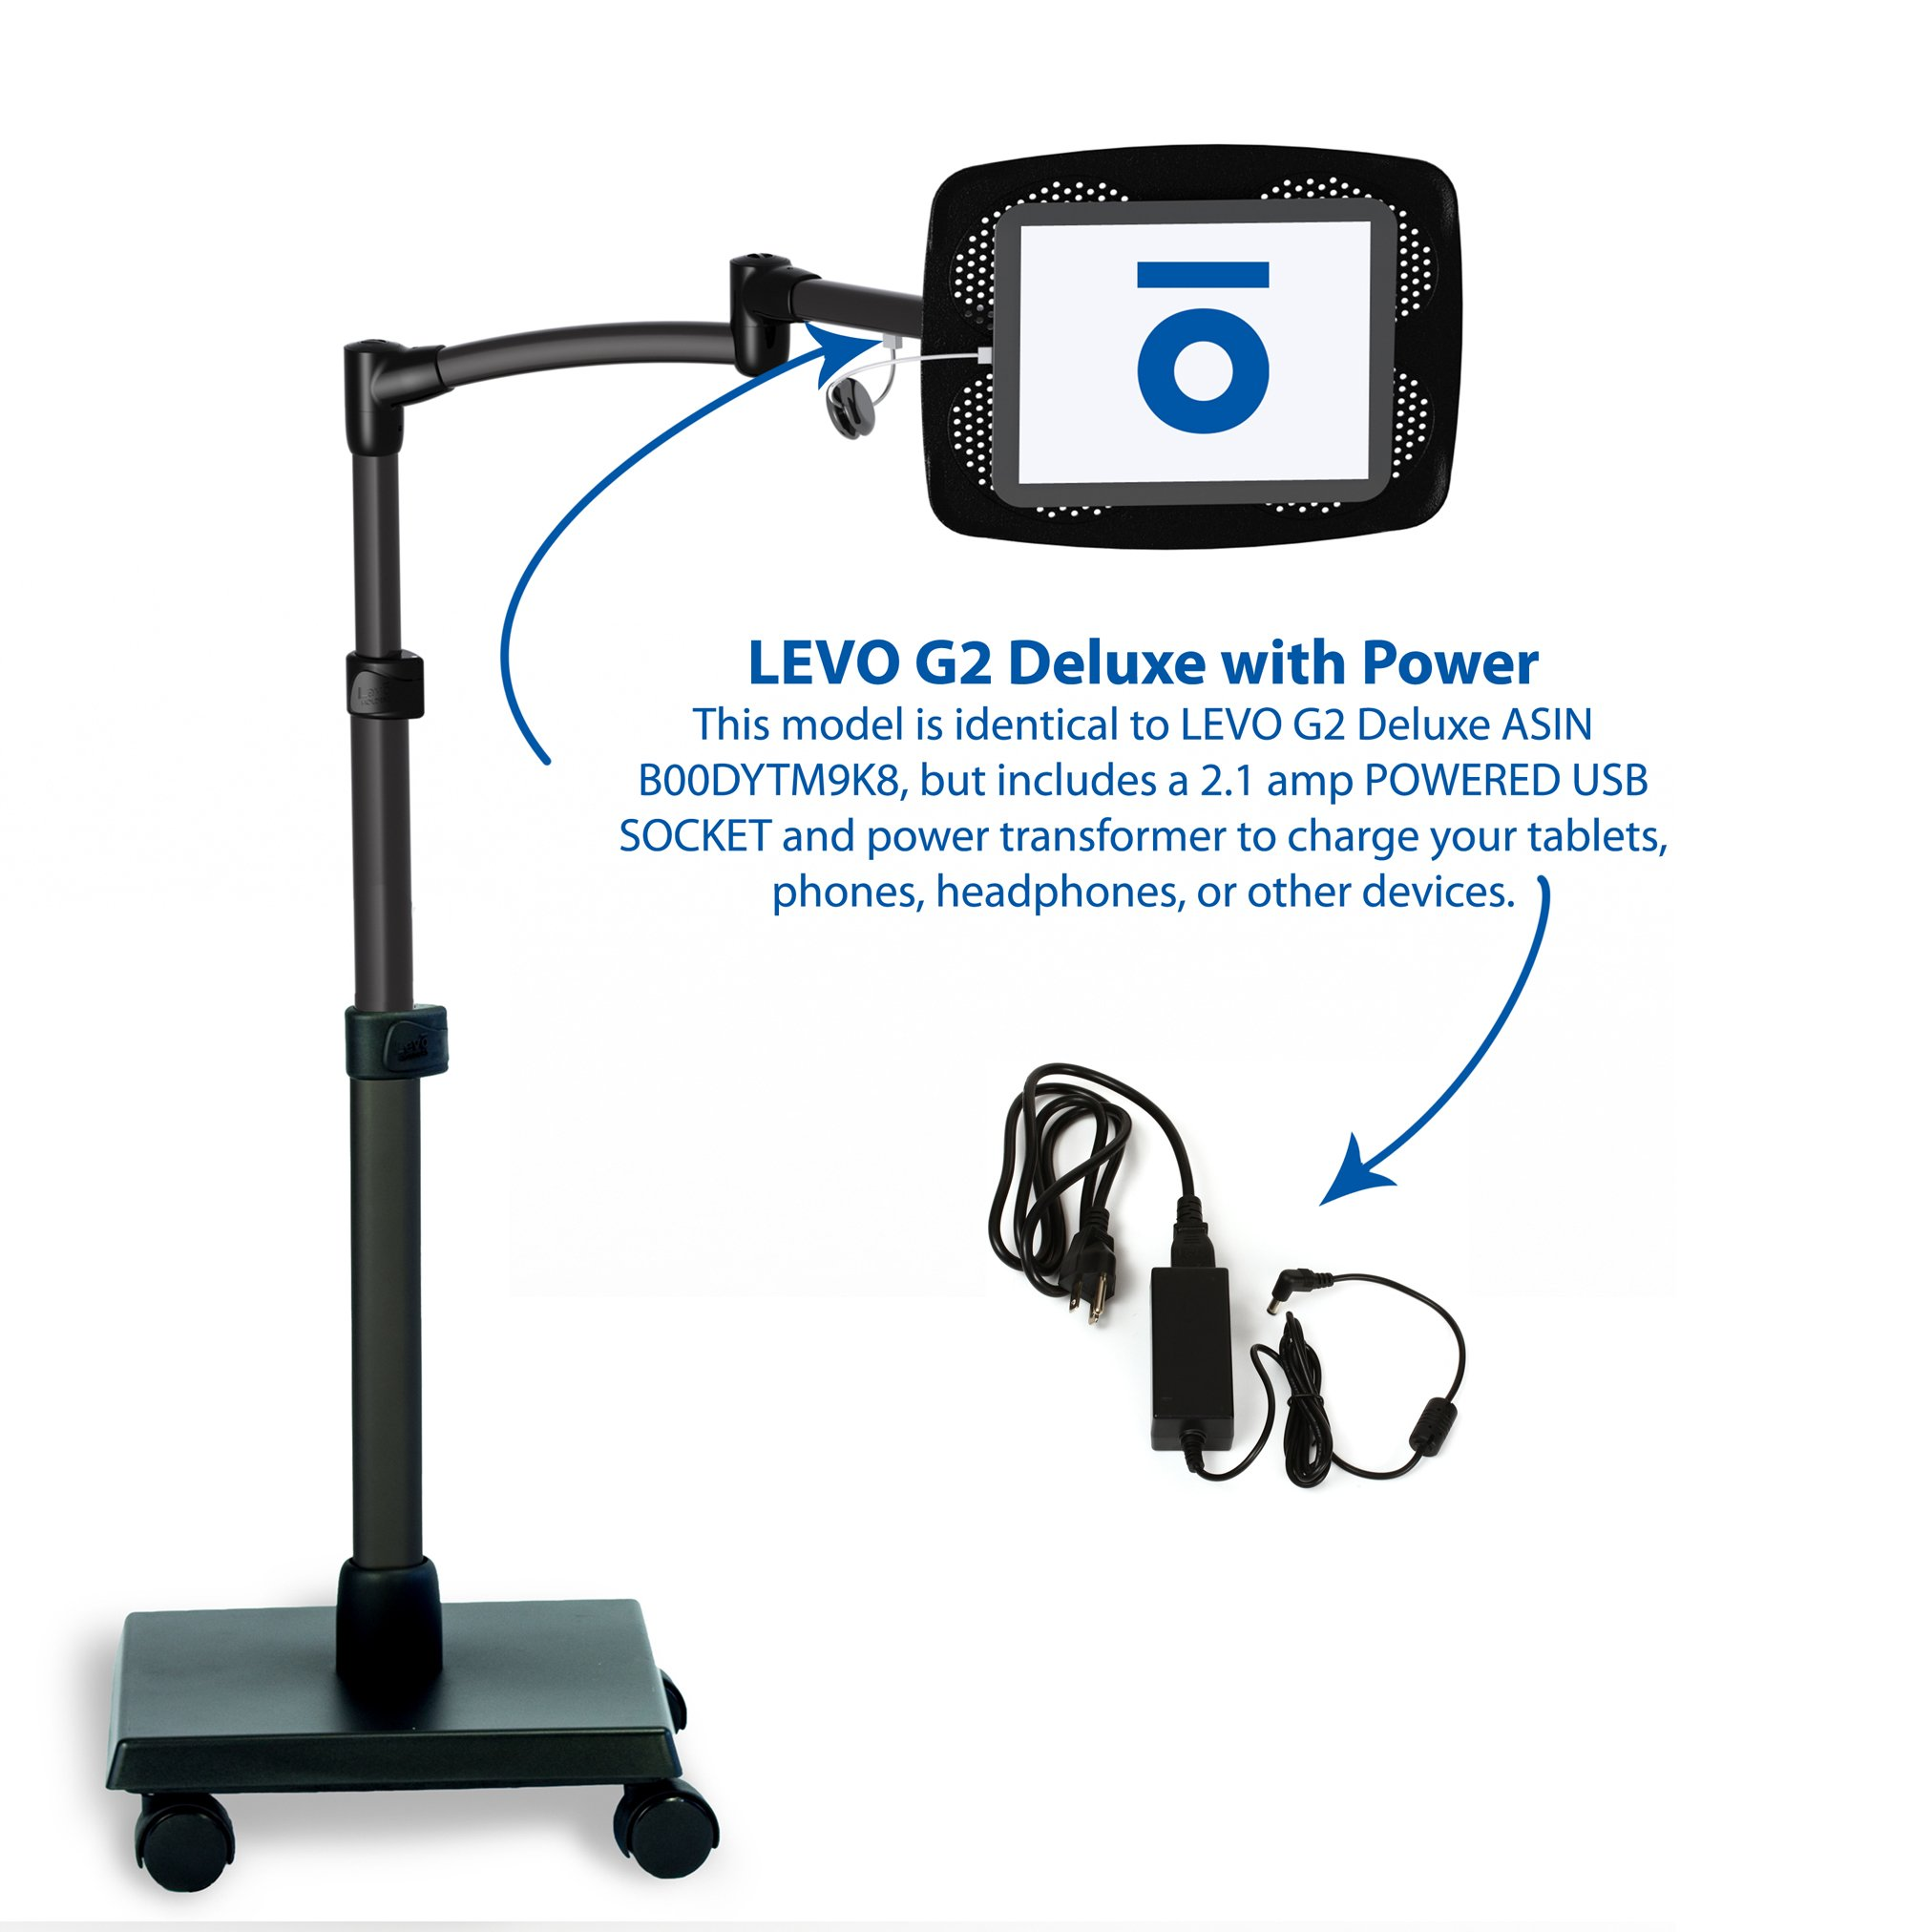 LEVO Deluxe Tablet Floor Stand Powered to Charge all Best Tablets iPad Mini Pro Galaxy Fire Surface by Levo (Image #4)